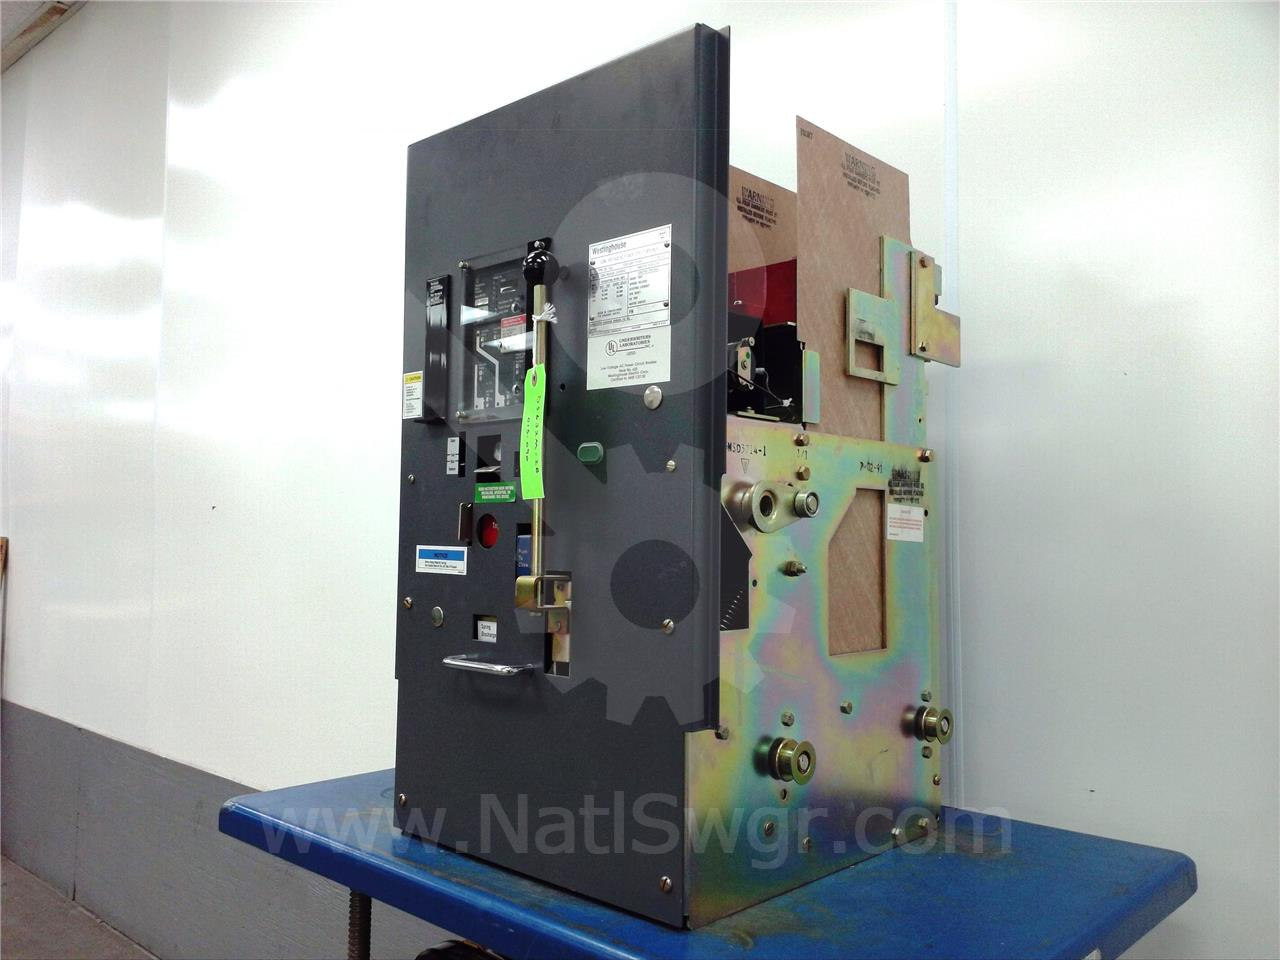 DS-632 3200A Westinghouse MO/DO DIGITRIP RMS 800 LIG, 3200A RP, 3200A CT, PTM